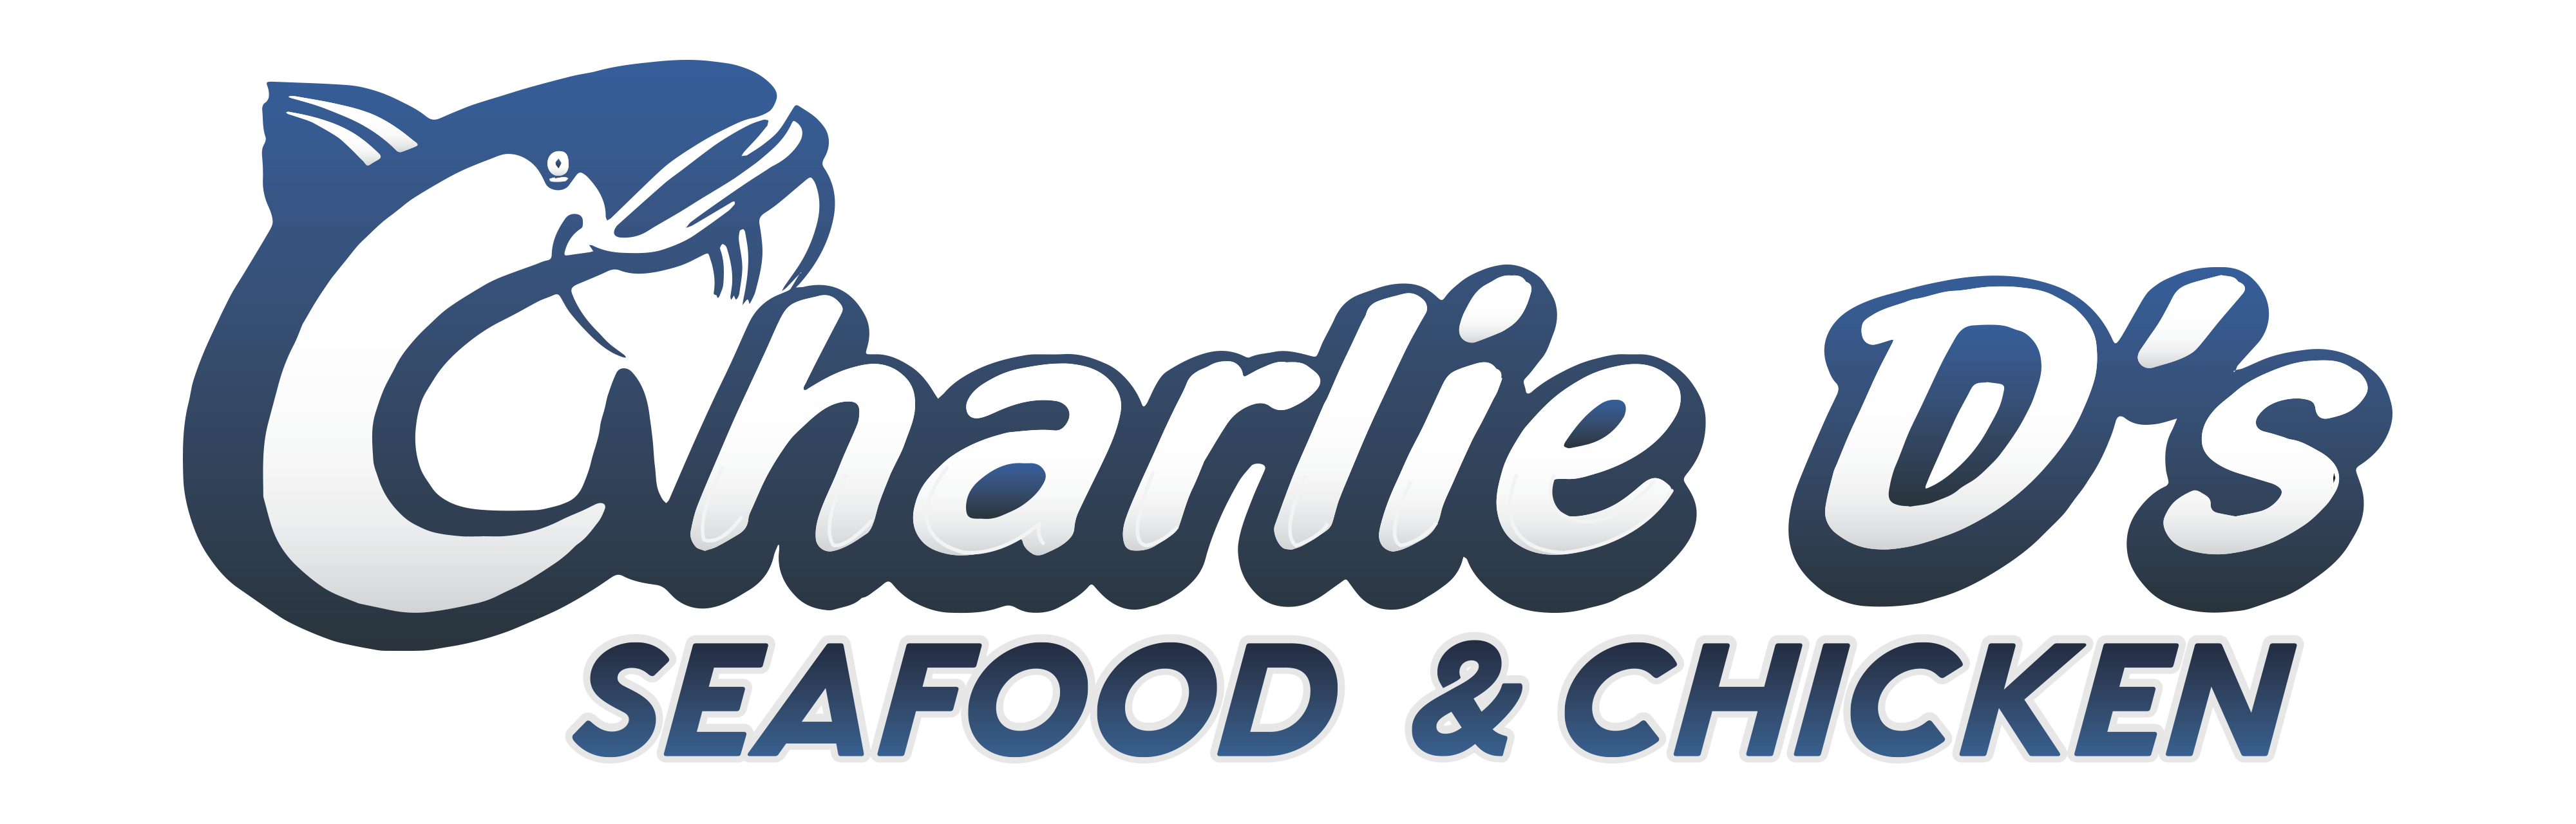 Charlie D's Seafood and Chicken Home